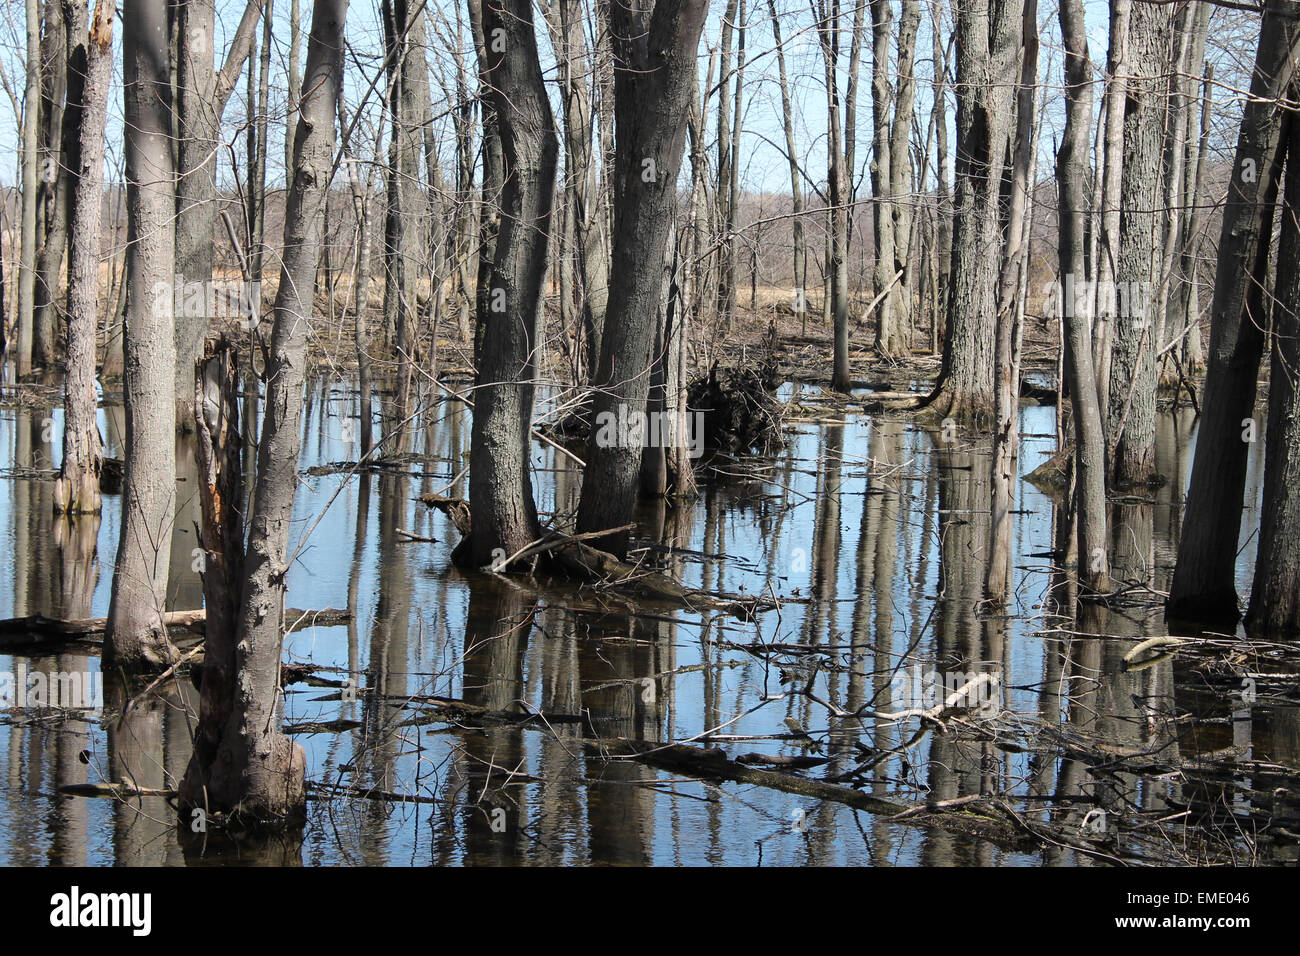 Canadian woodland flooded after the spring thaw of snow - Stock Image